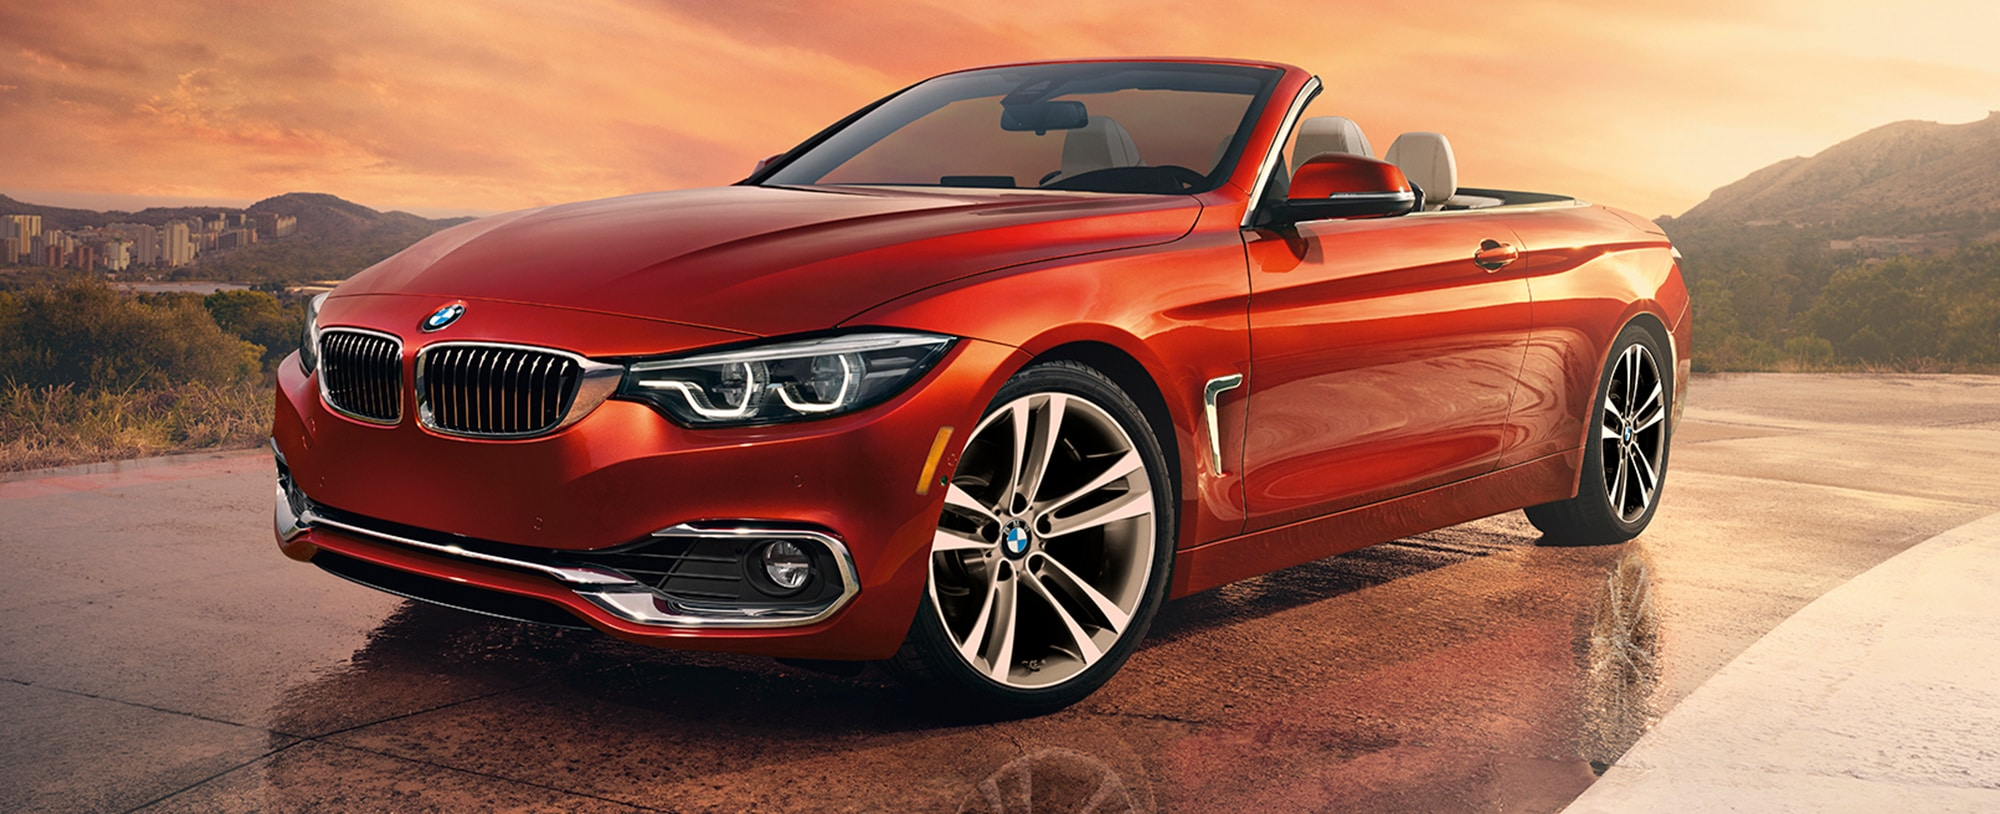 2019 Bmw 4 Series Bmw Of Reading